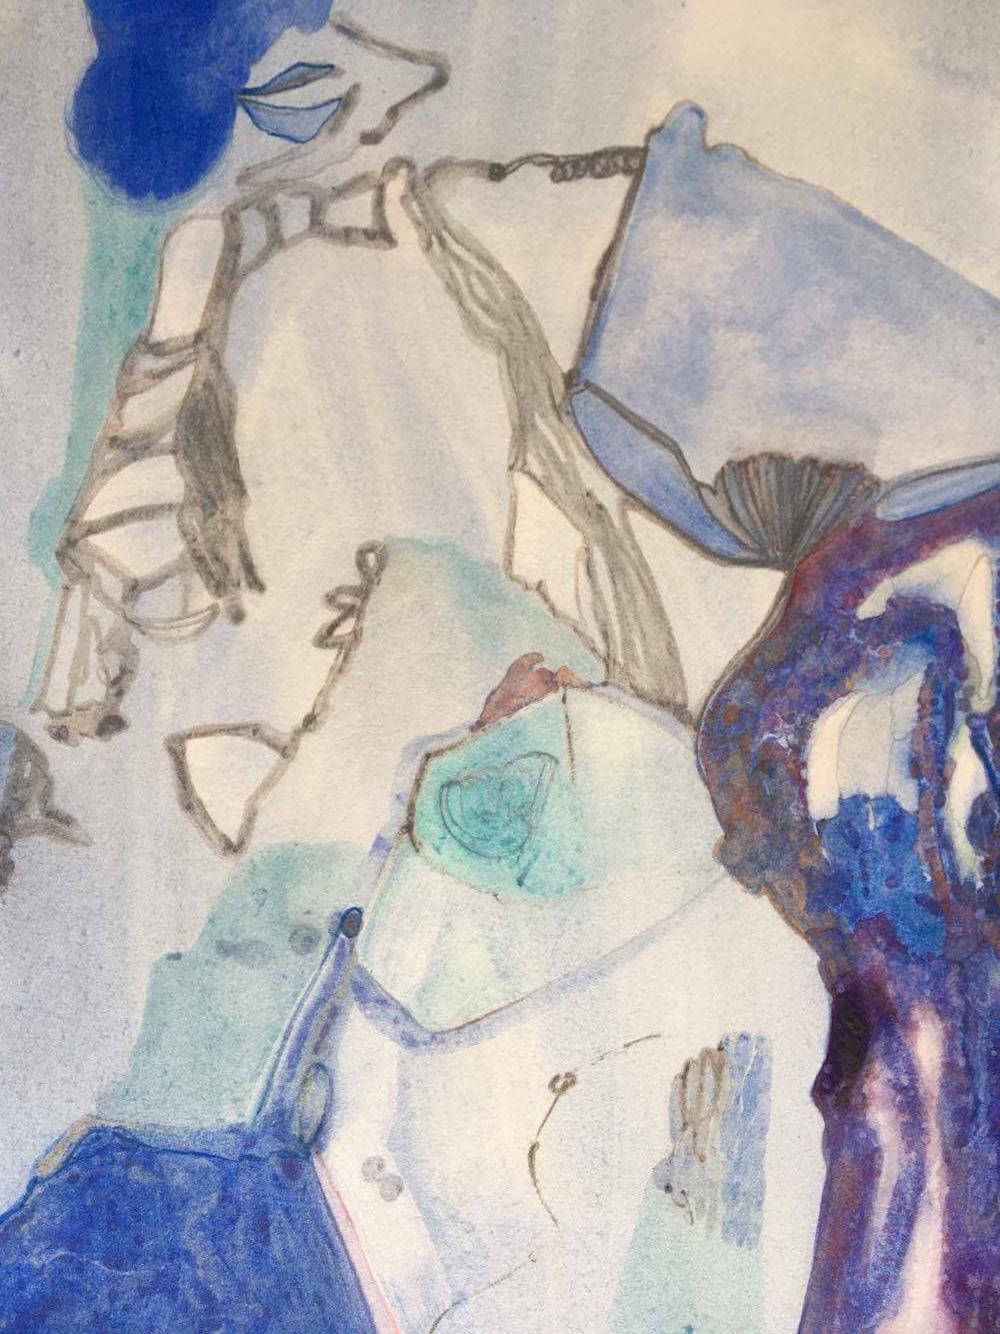 Graeme Hildebrand Art Prize for Young Contemporary Artists - 12 - 29 October 2017Red Gallery, Melbourne<<Seeping Through ,Watercolour on Paper2017297 x 420mmThis work on paper has been selected for the finalist exhibition.